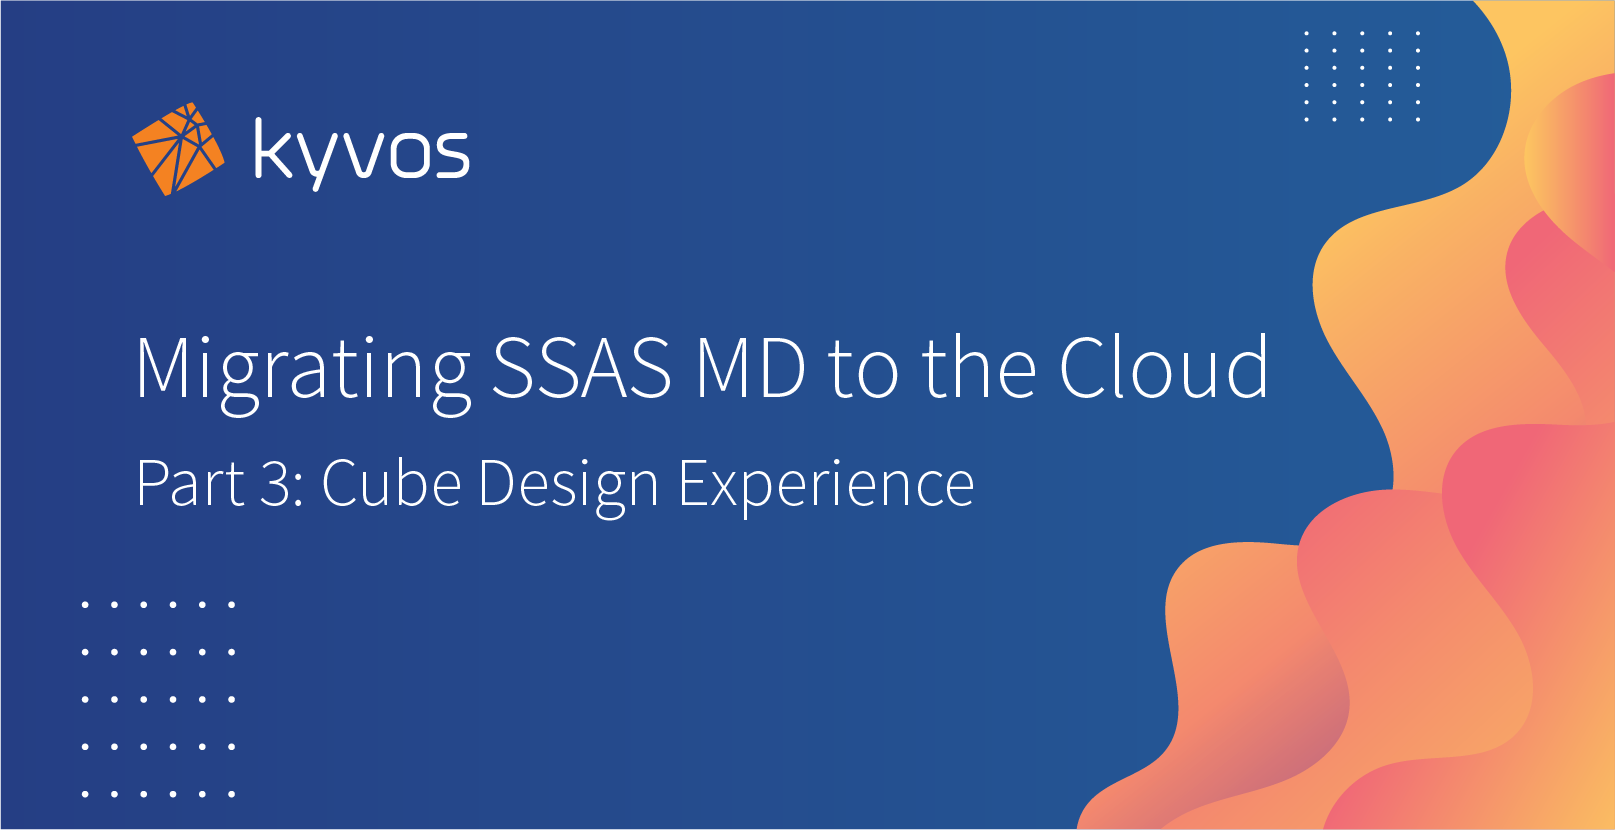 SSAS MD to Kyvos Migration – Part 3